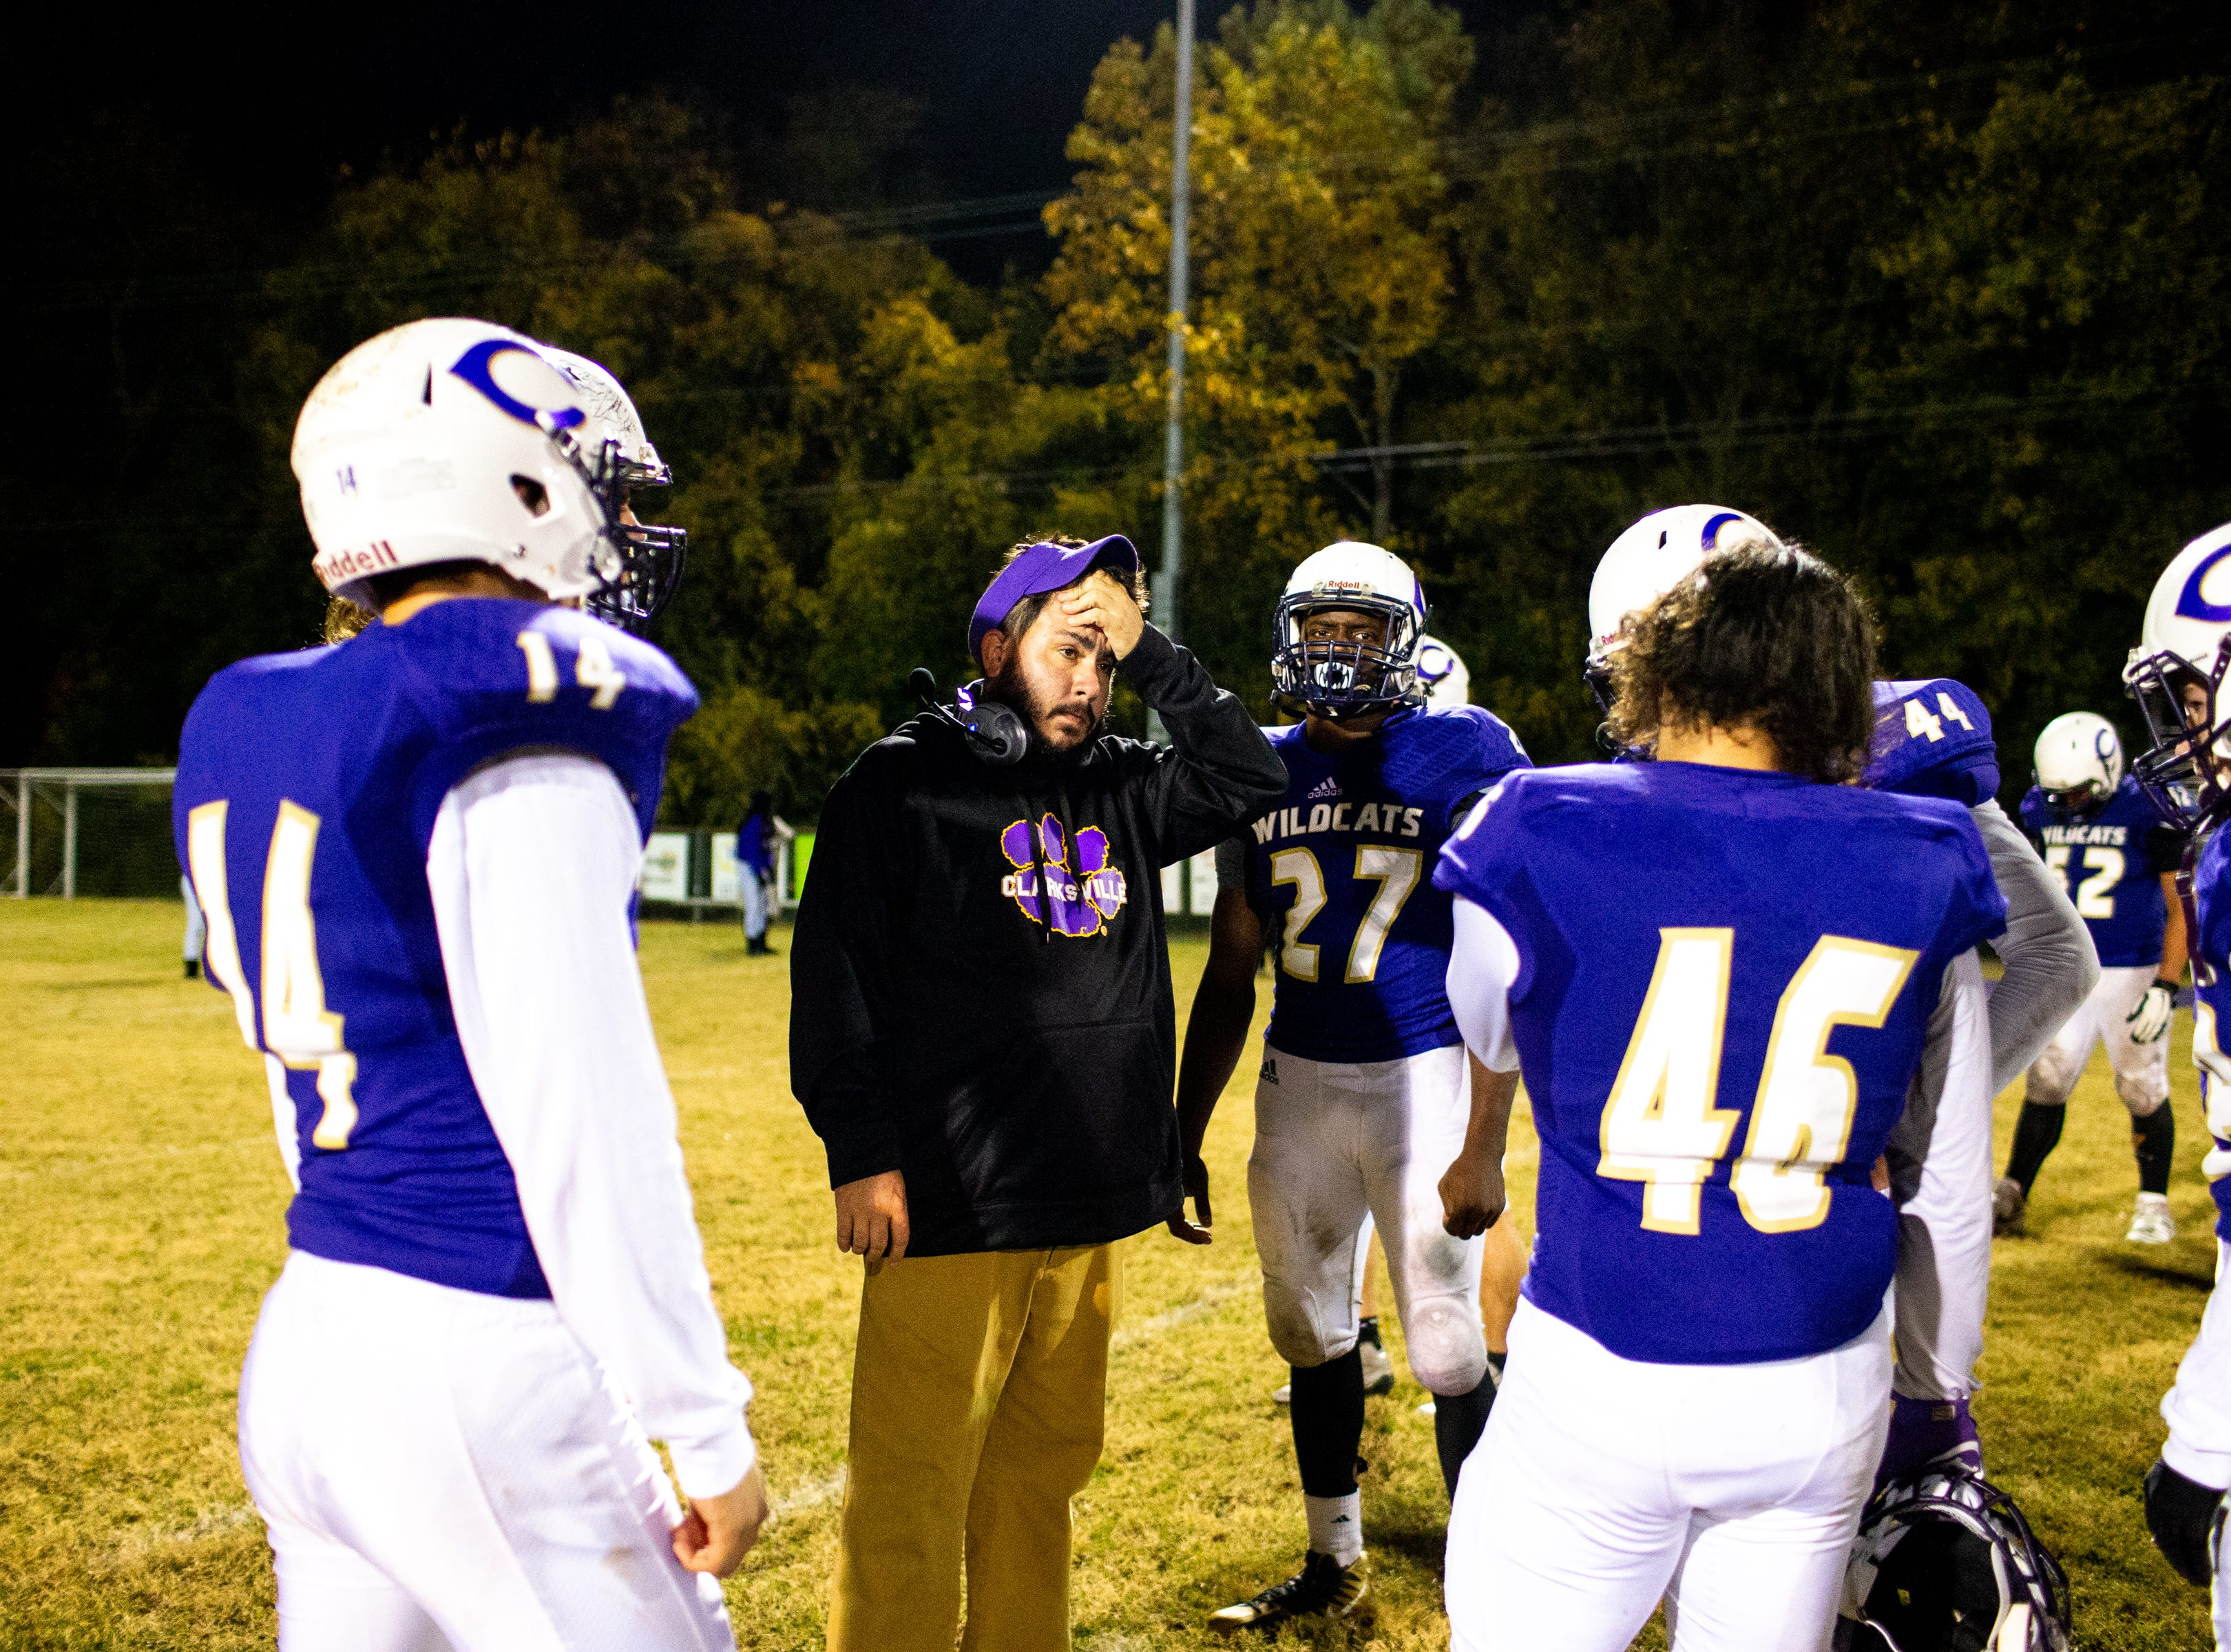 Clarksville High head coach Isaac Shelby gathers the players after losing in overtime at Clarksville High Friday, Nov. 2, 2018, in Clarksville, Tenn.